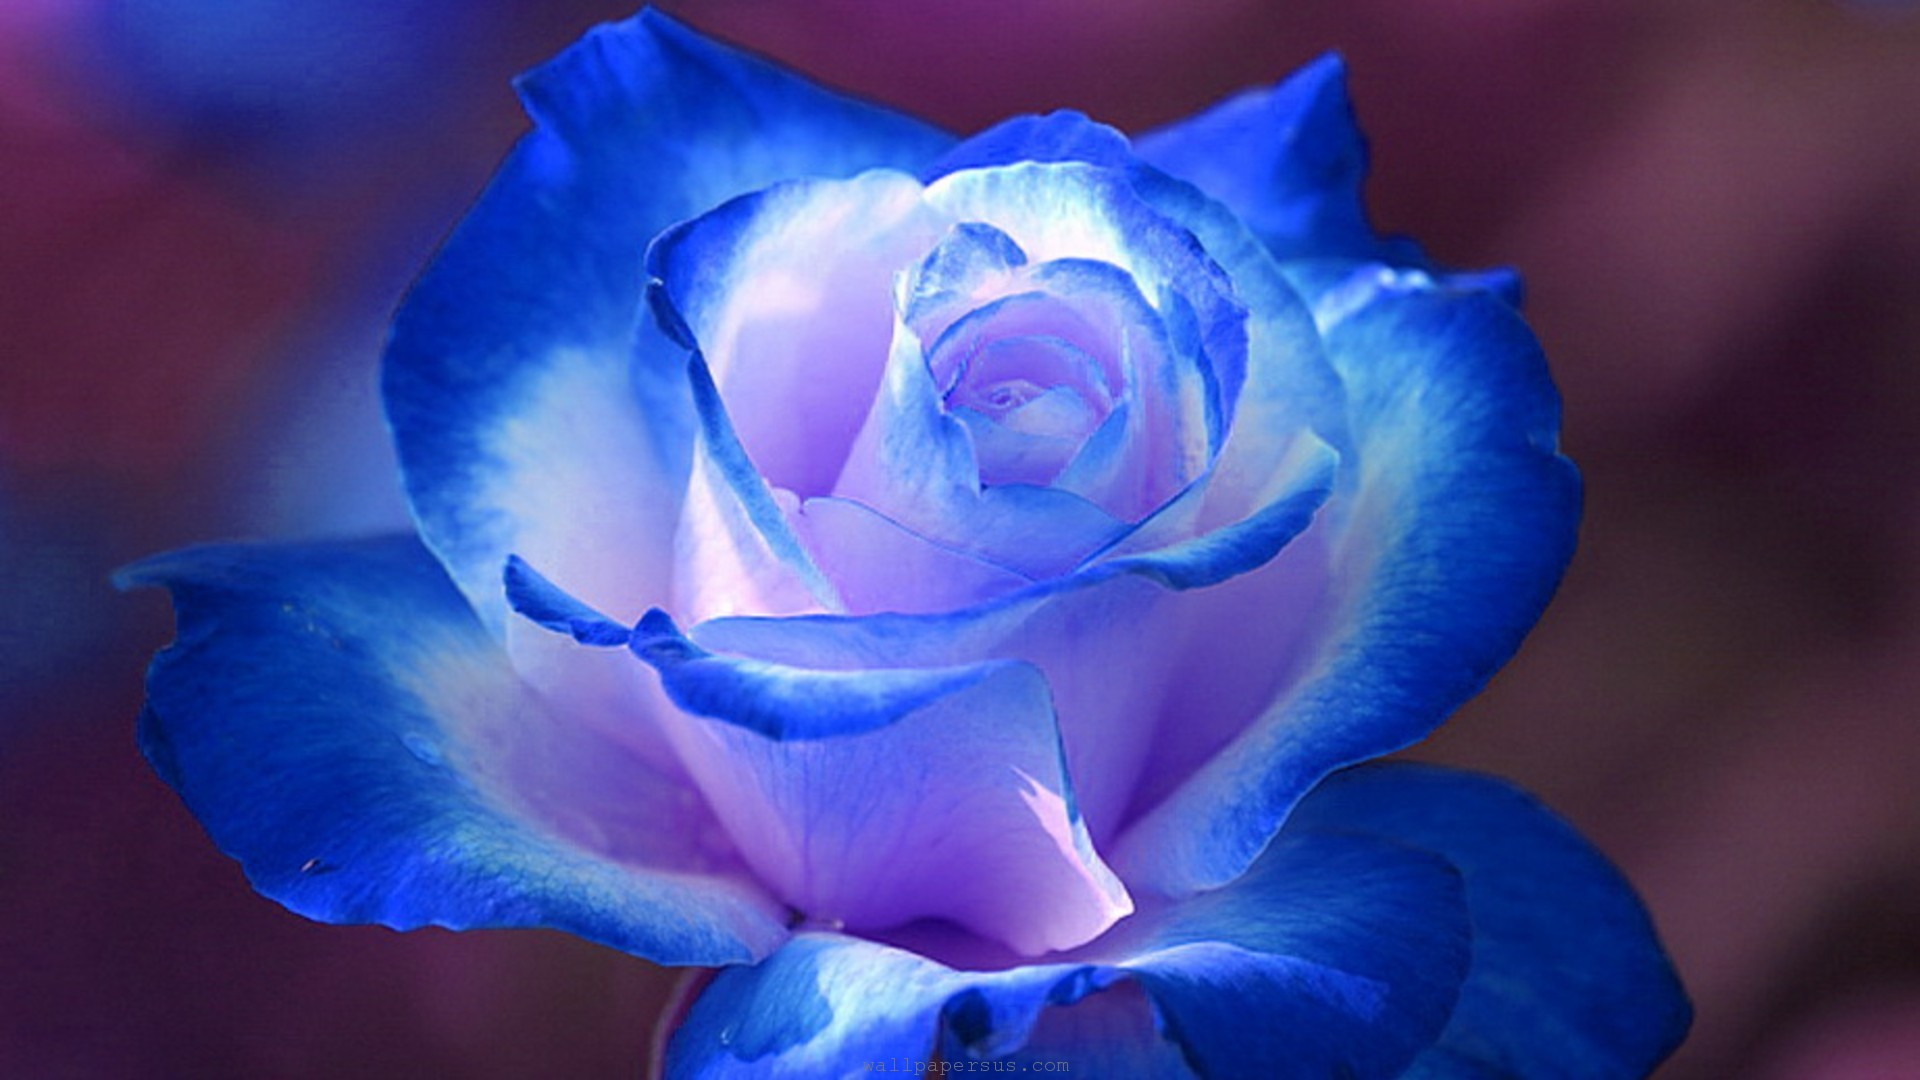 Use of Rose Flower - What is The Use of Rose Flower in Medicine.